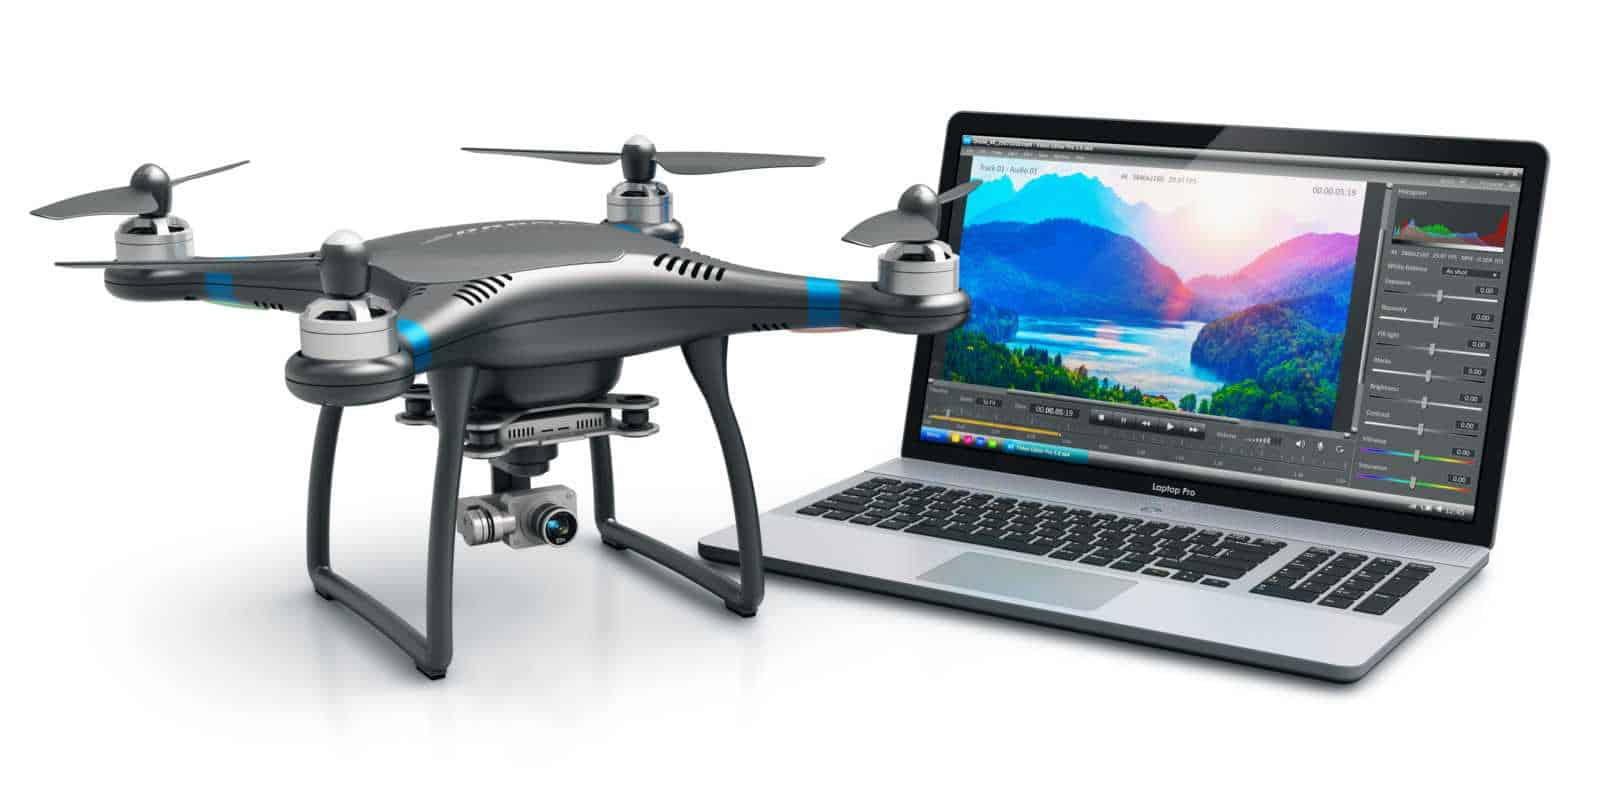 Drone Apps and Software image showing a small black drone and laptop